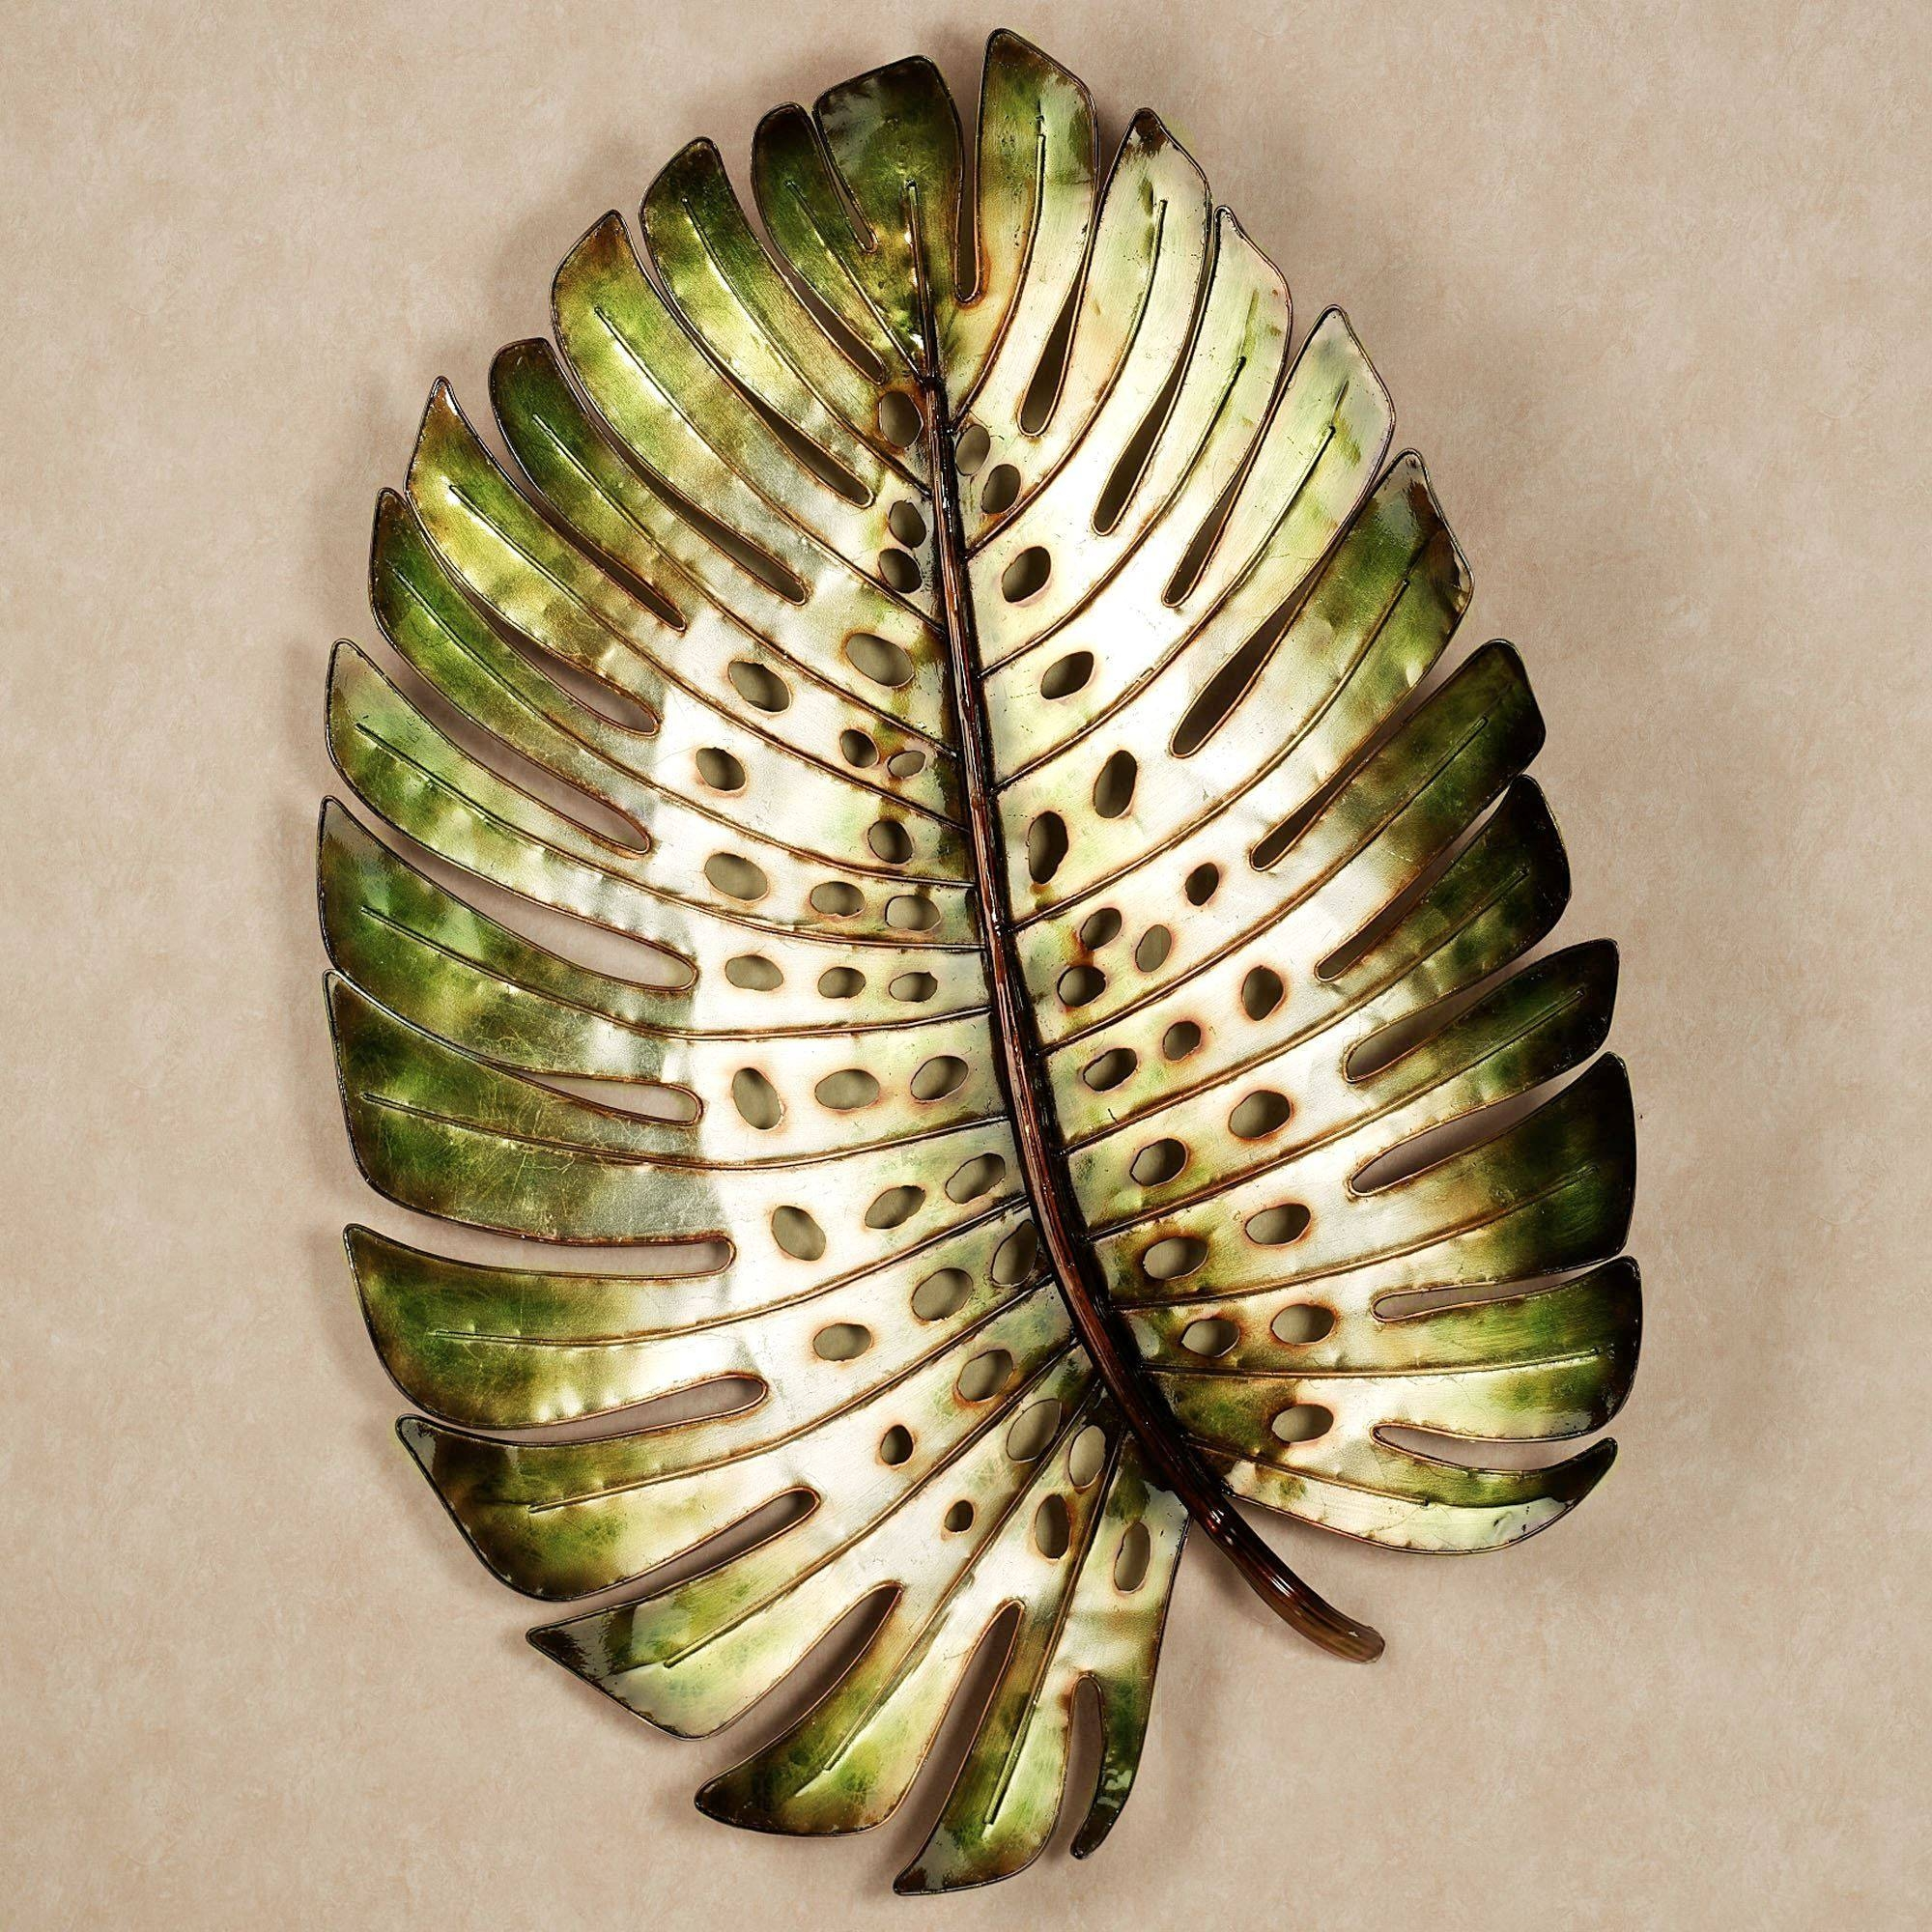 Wondrous Tropical Metal Wall Art Home Tropical Leaf Metal Design In Most Current Metal Wall Art Leaves (View 20 of 20)